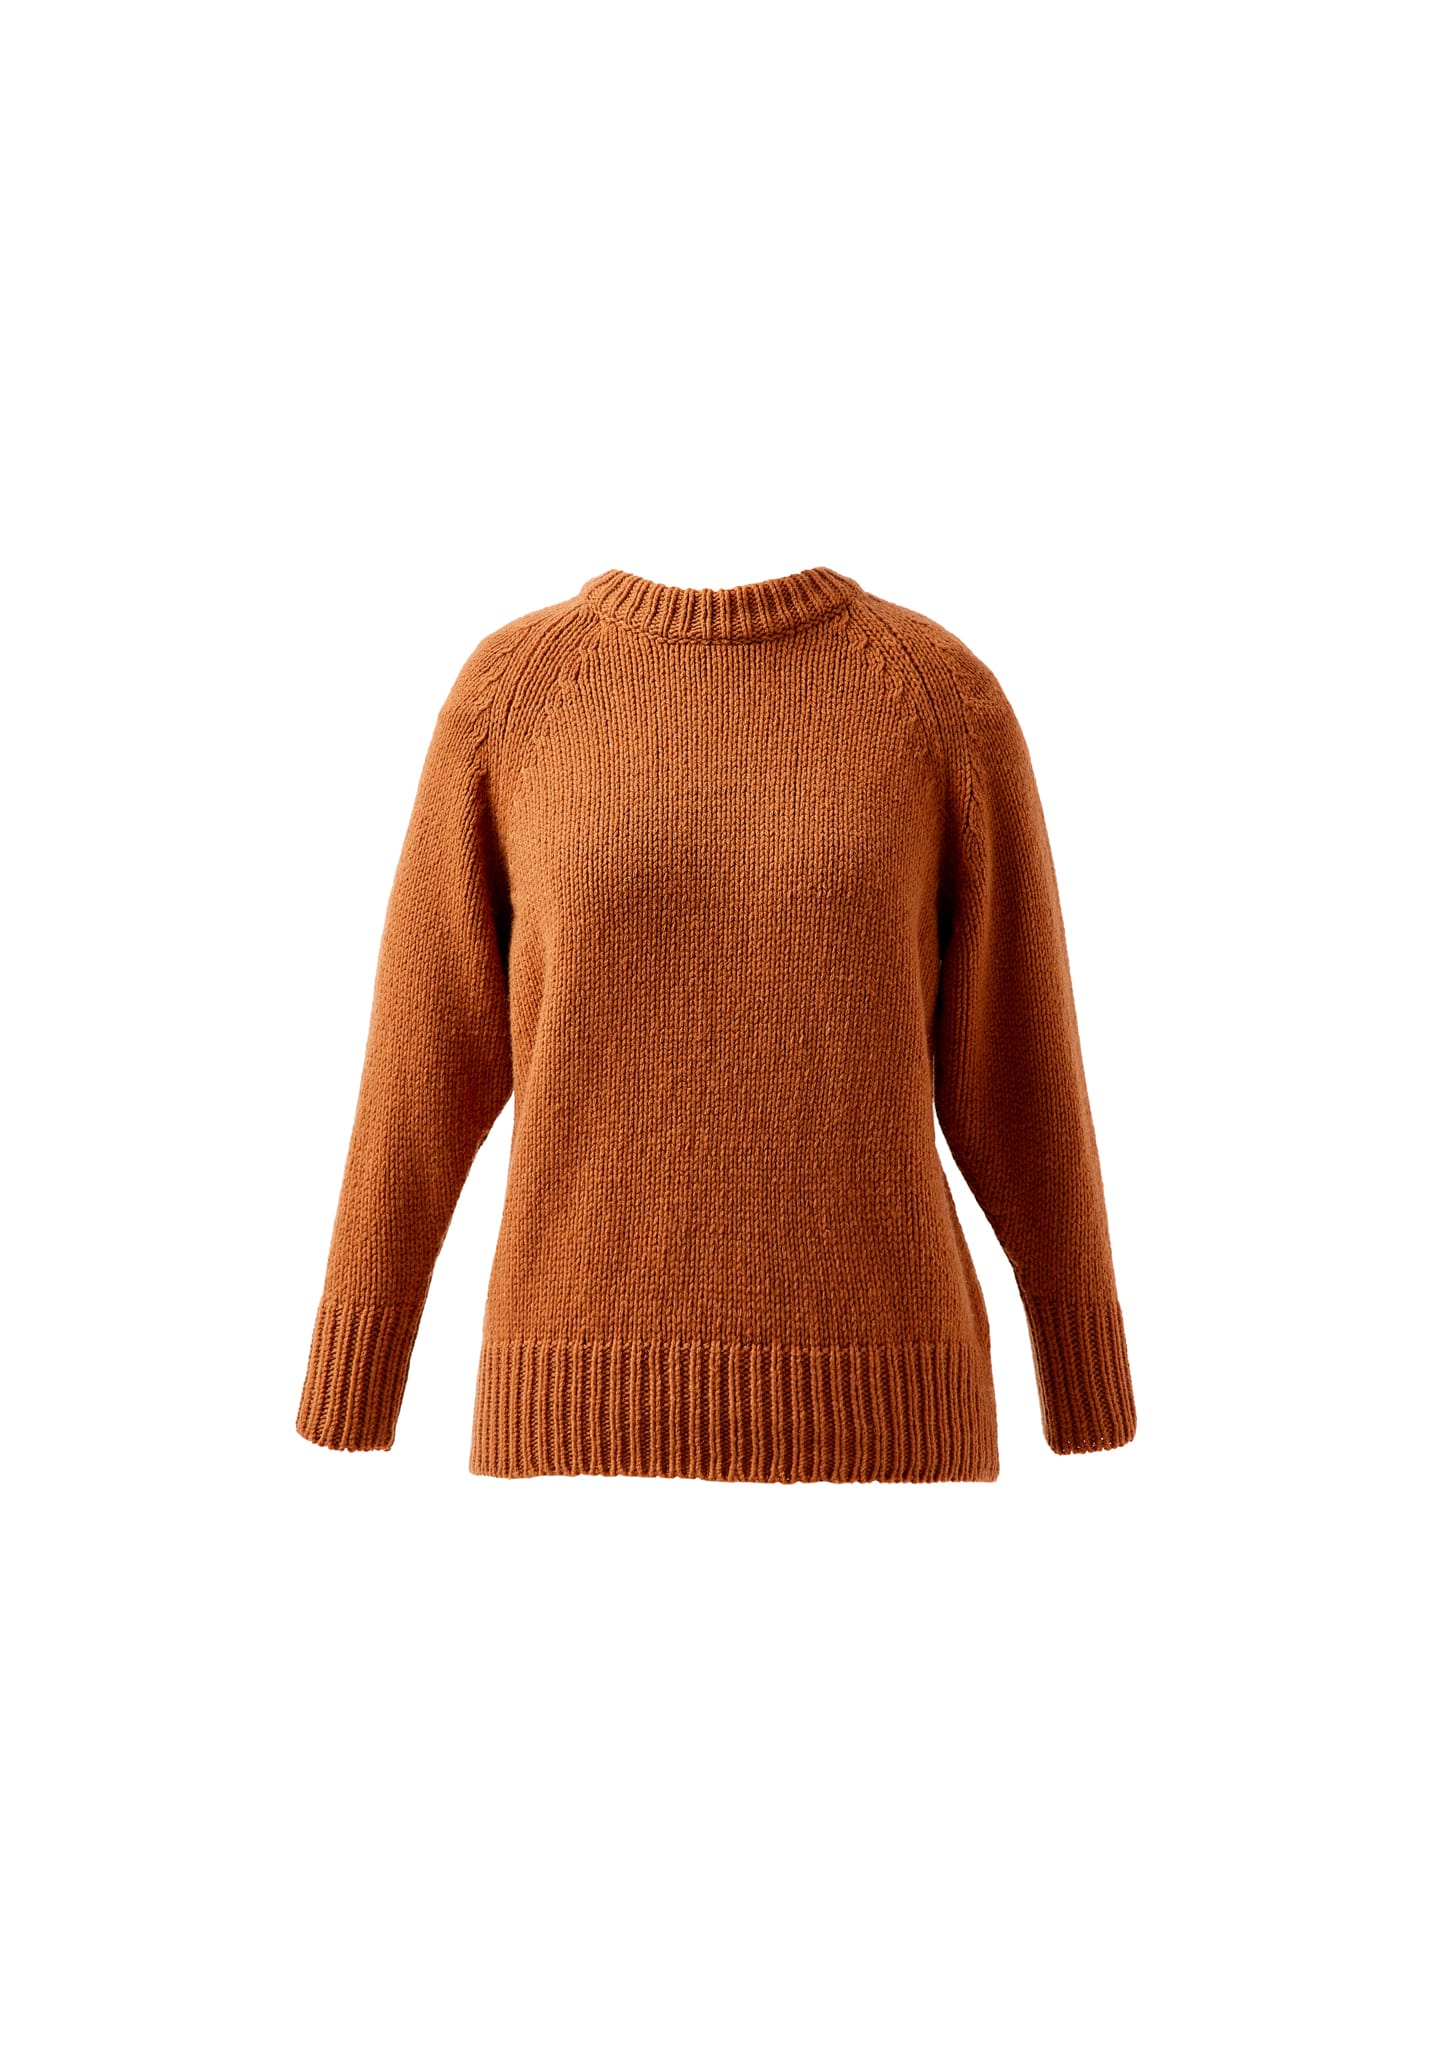 WOOL-CASHMERE MOCK-NECK SWEATER